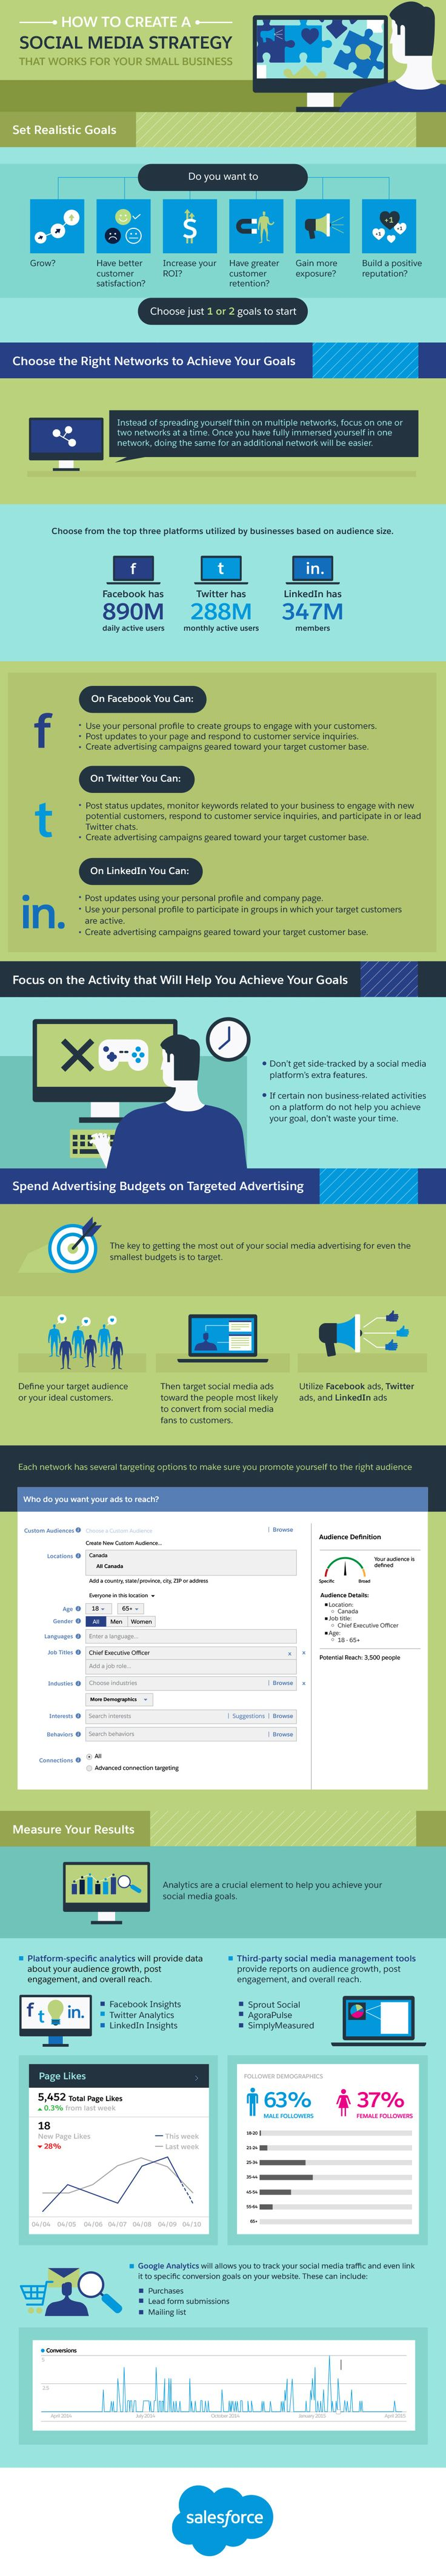 How to Create a Social Media Strategy that Works for Your Small Business - Infographic